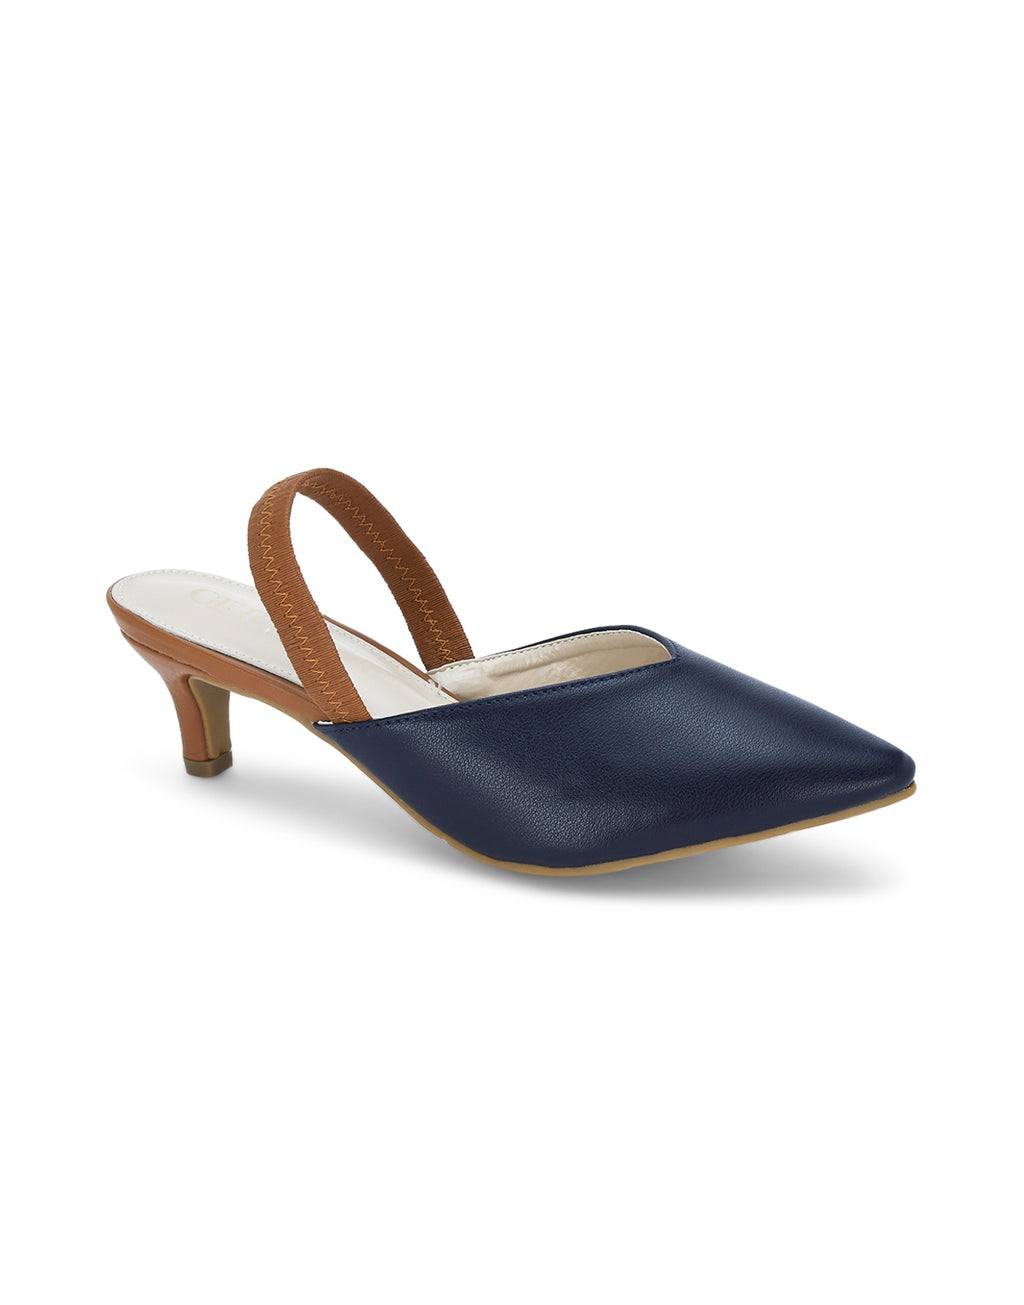 Tracy Navy Pumps